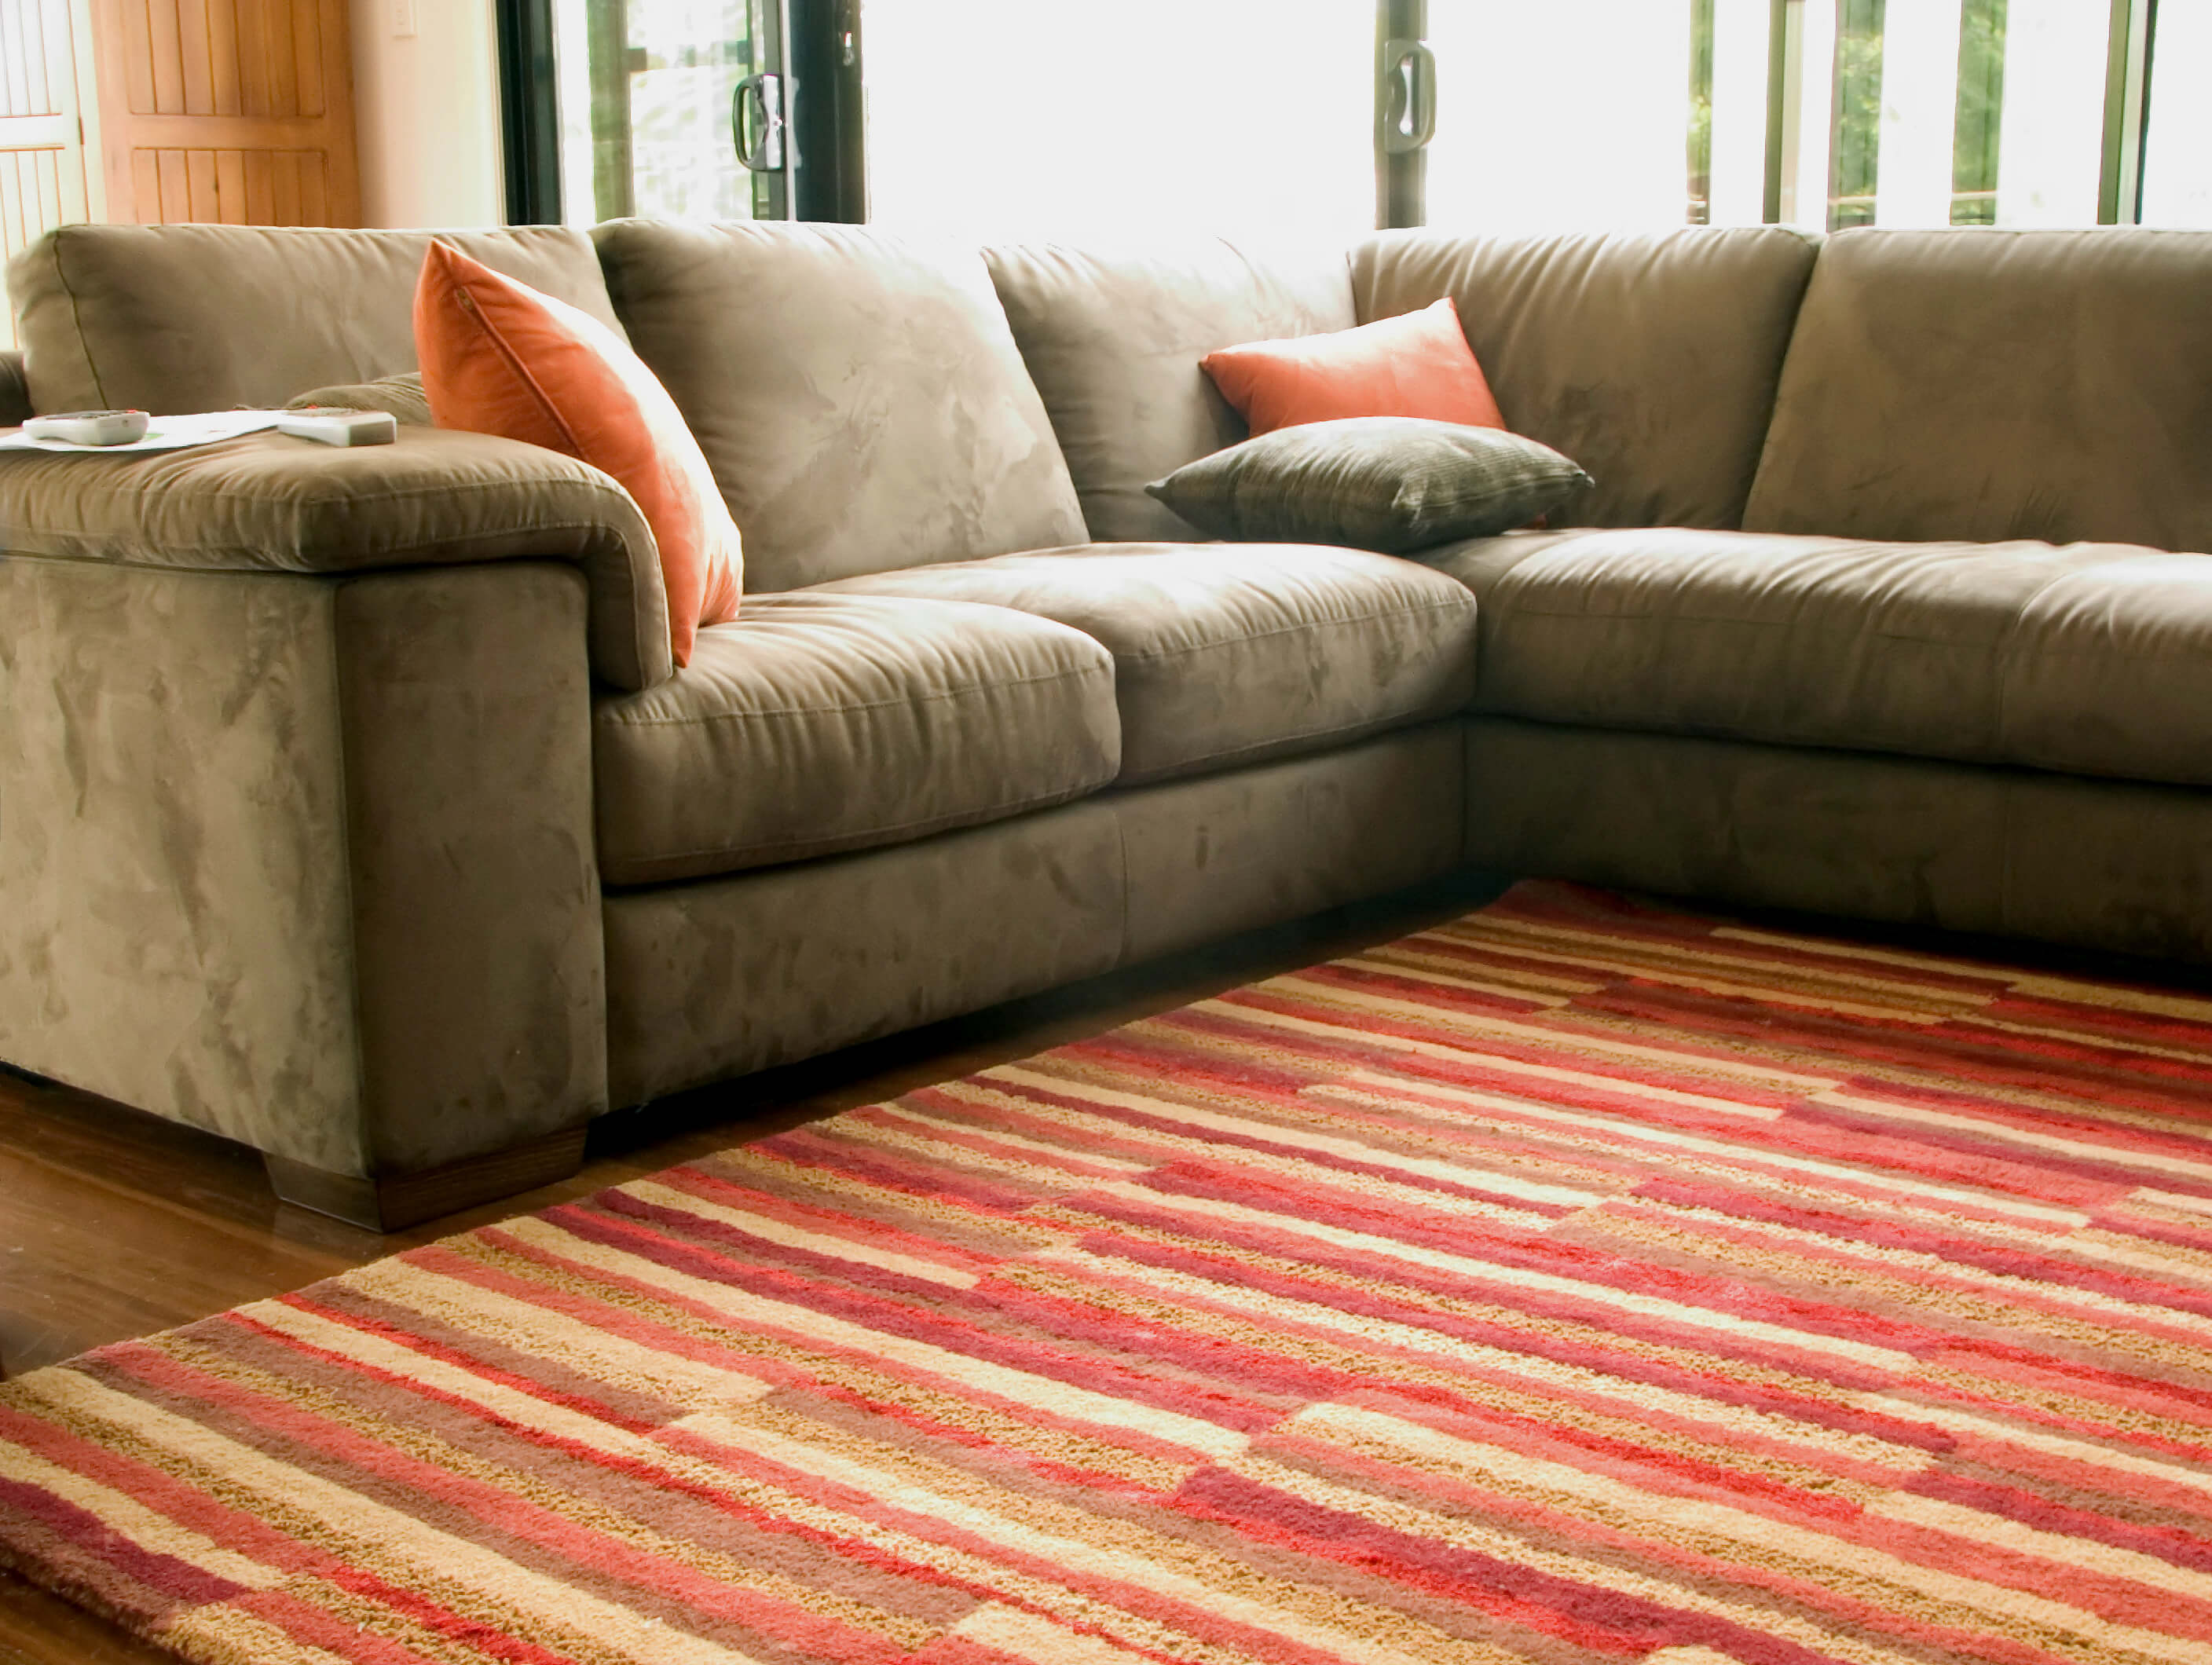 upholstery cleaning in blaine wa